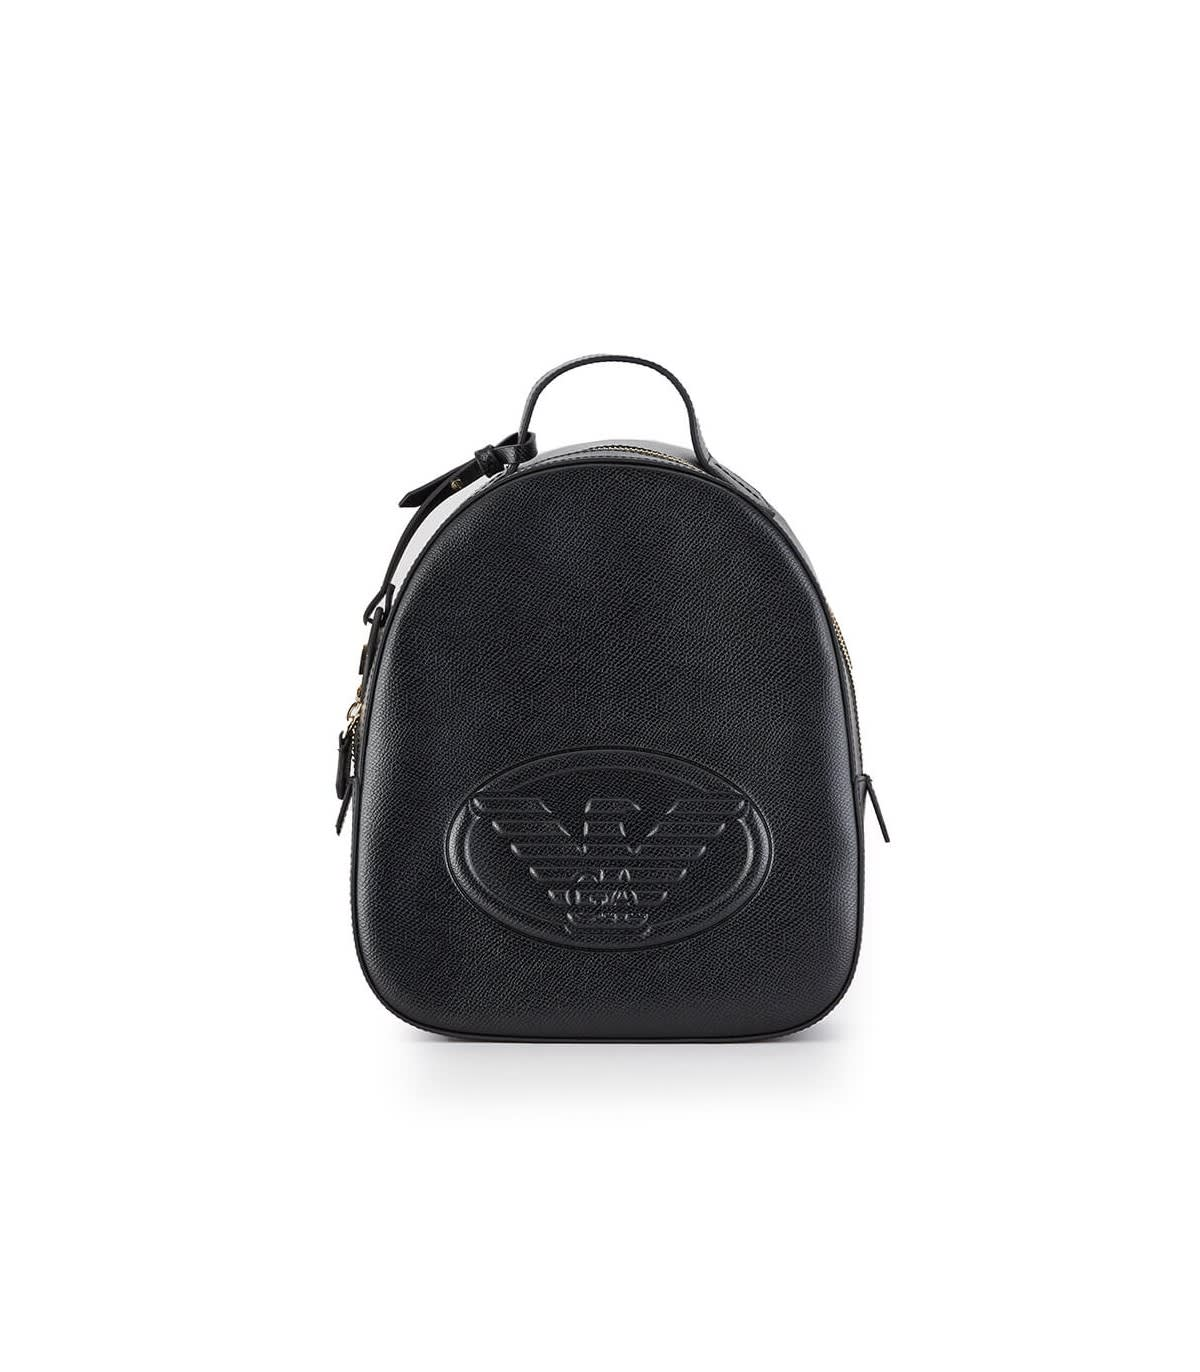 Emporio Armani BLACK BACKPACK WITH MAXI LOGO